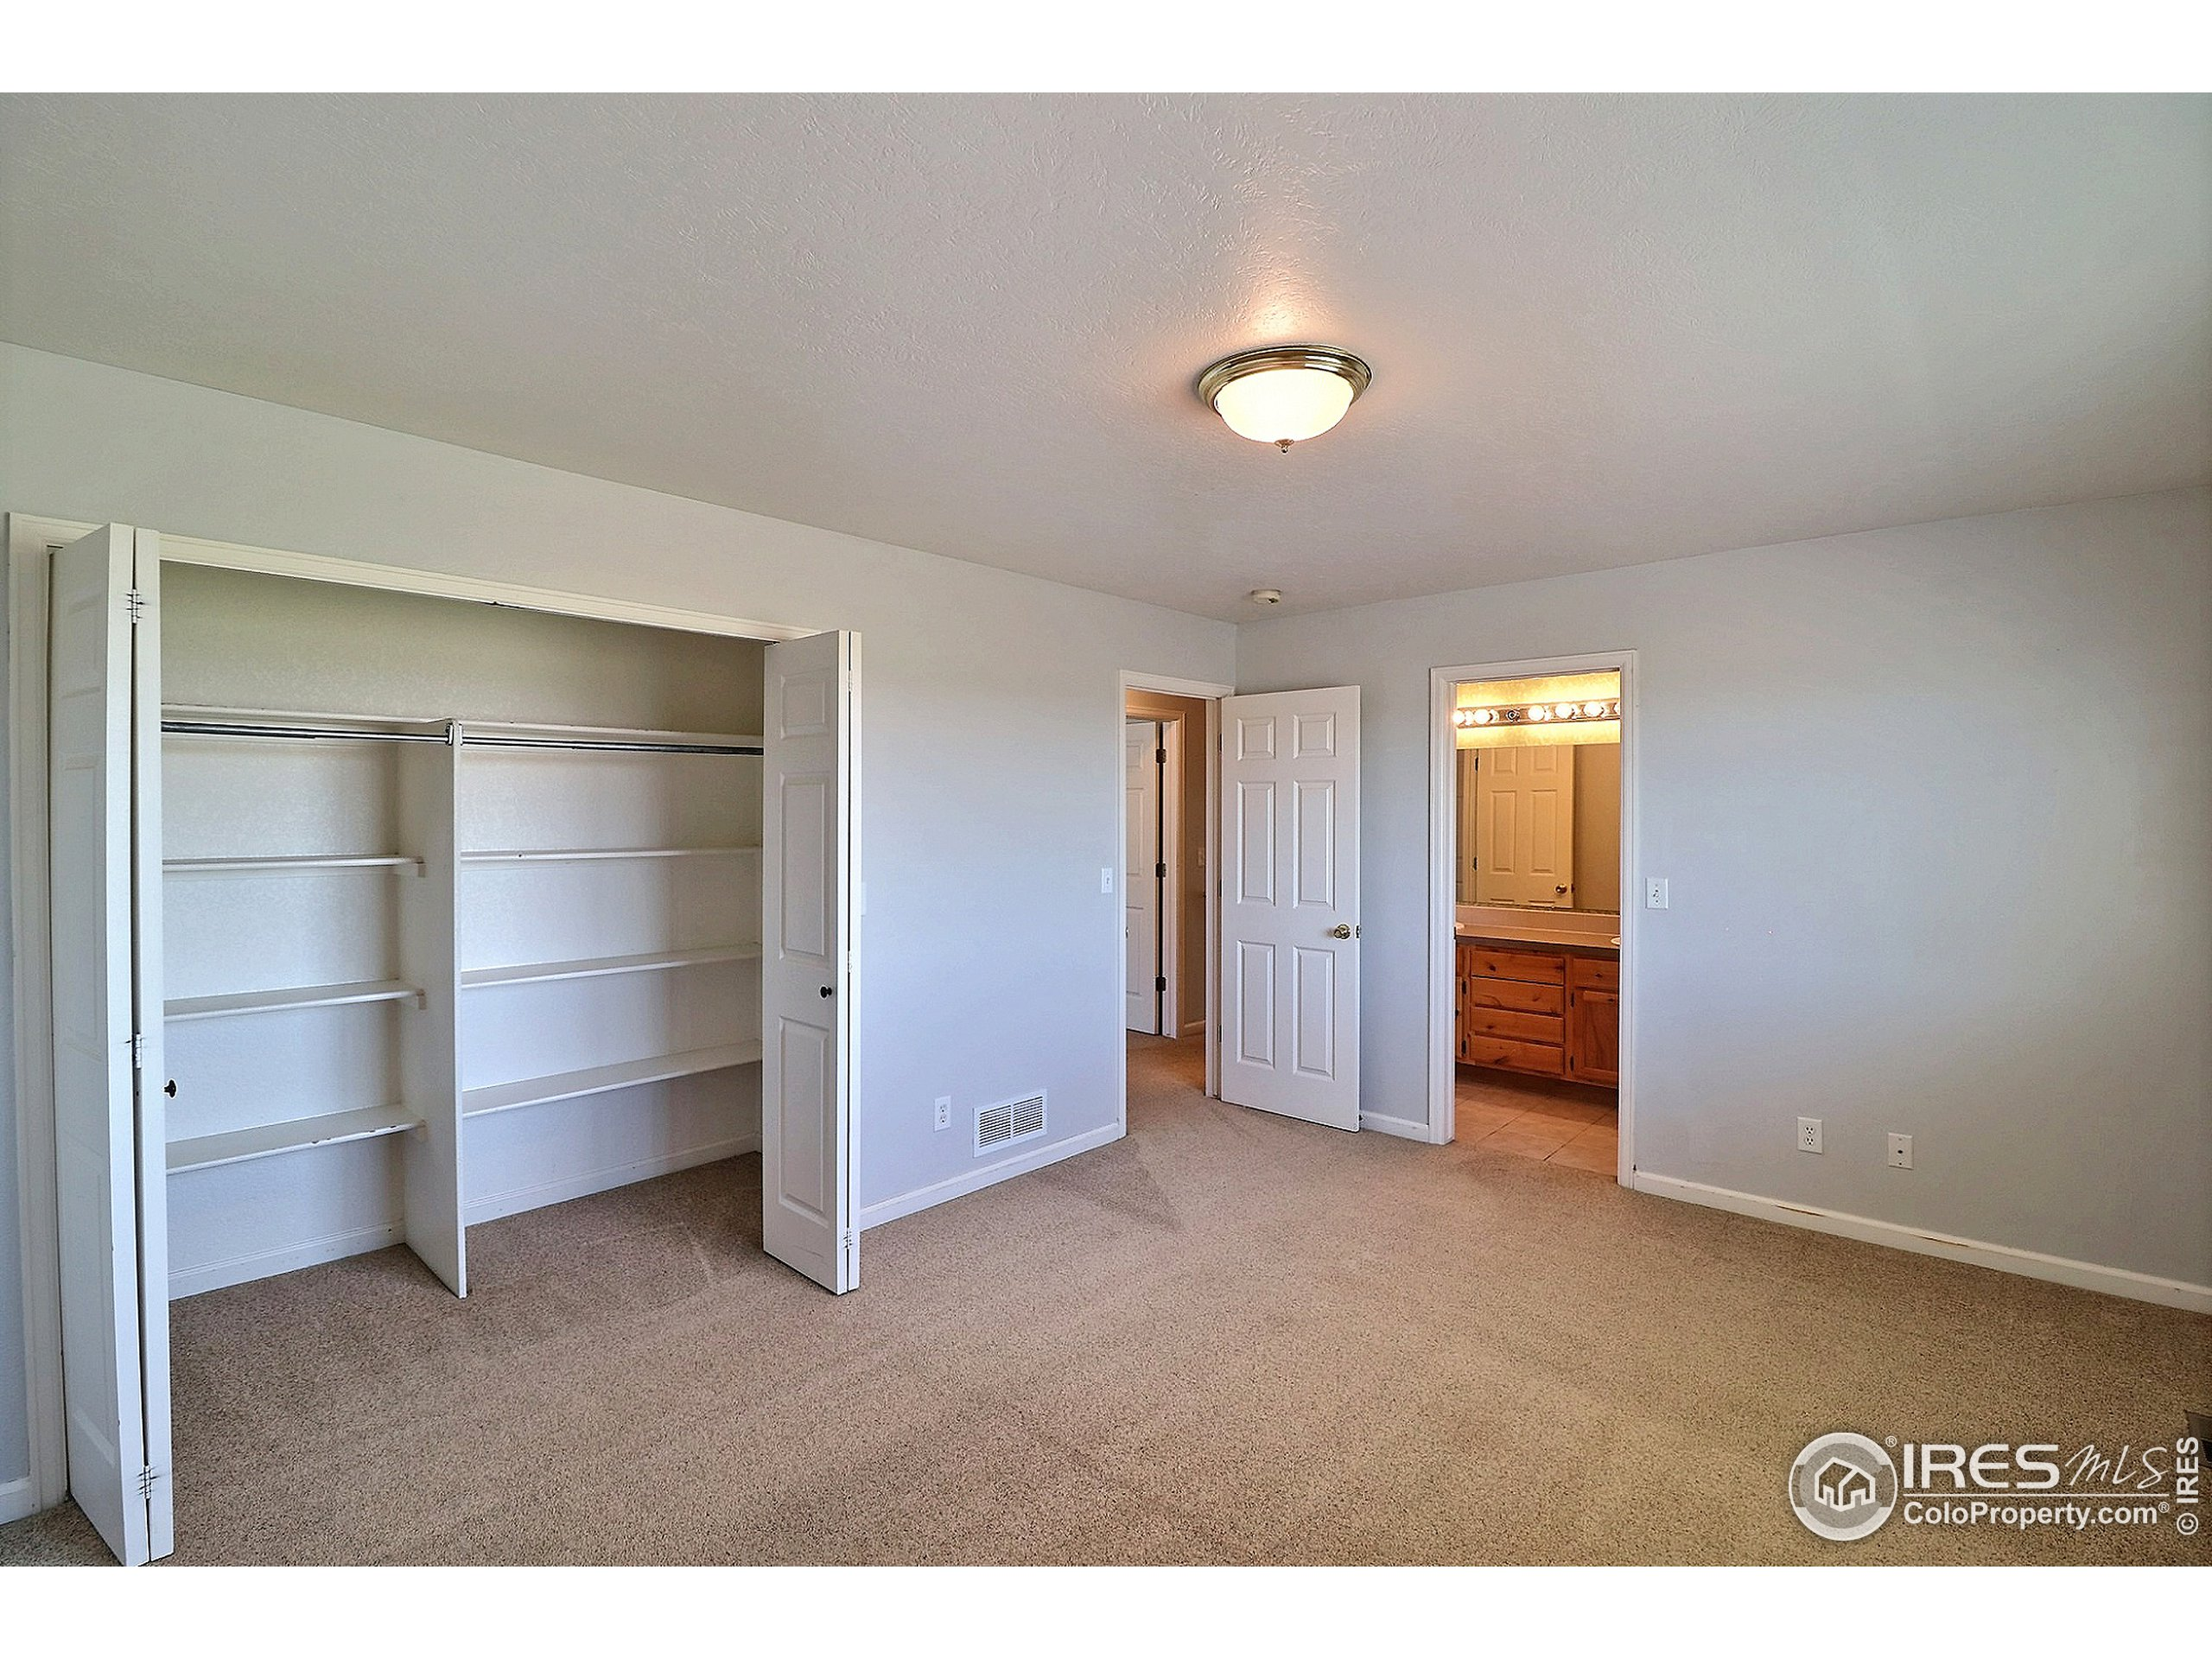 Upstairs Master Bedroom with Large Closet with Organizer